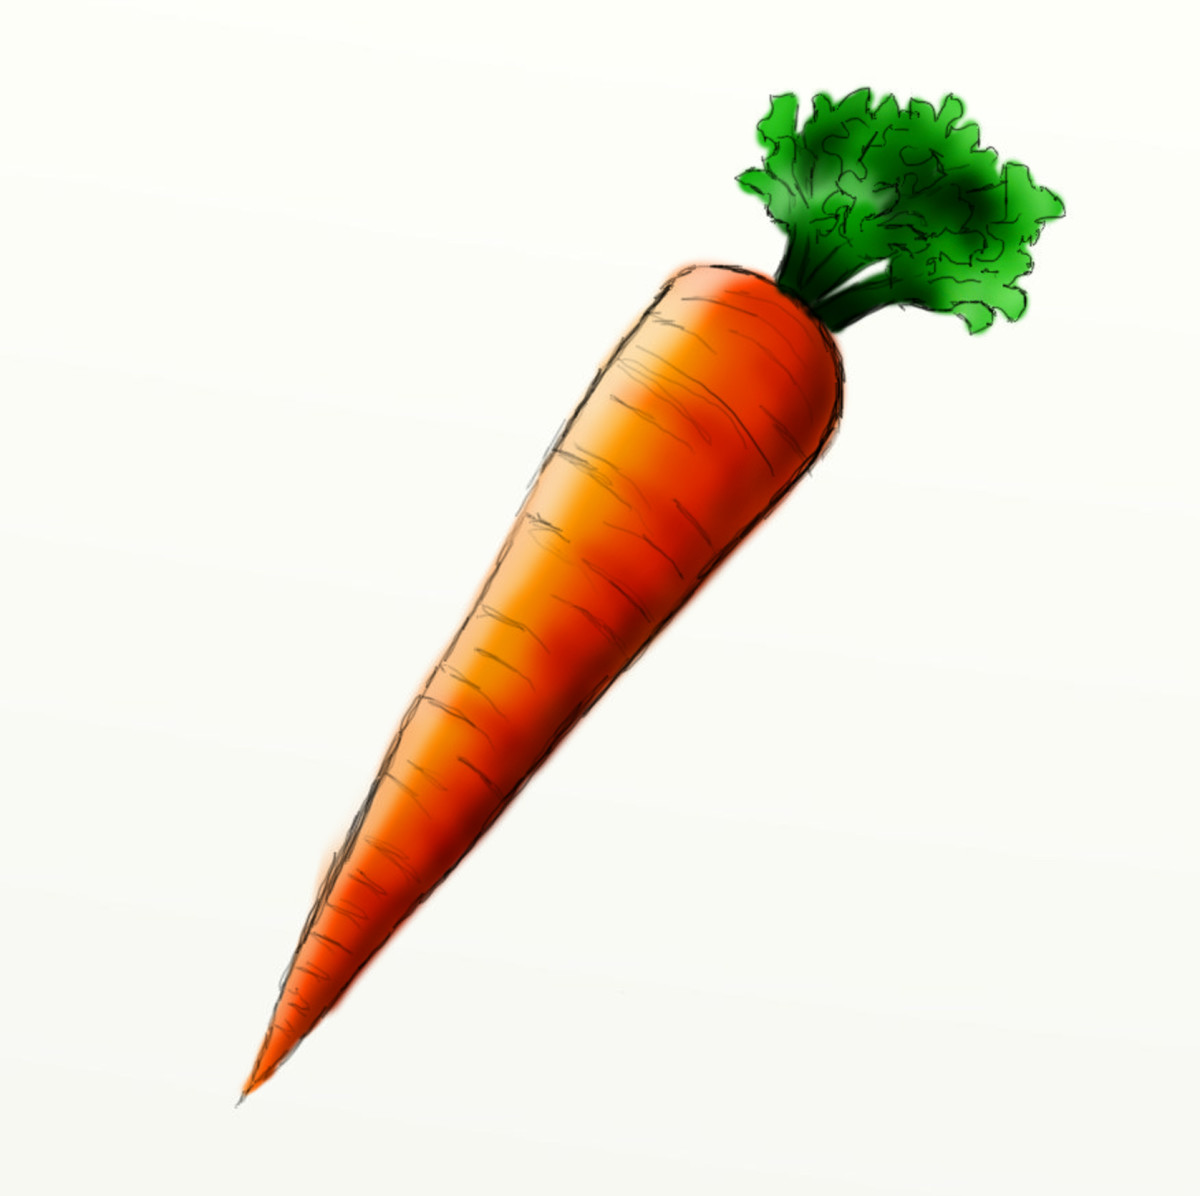 How To Draw A Carrot Hubpages